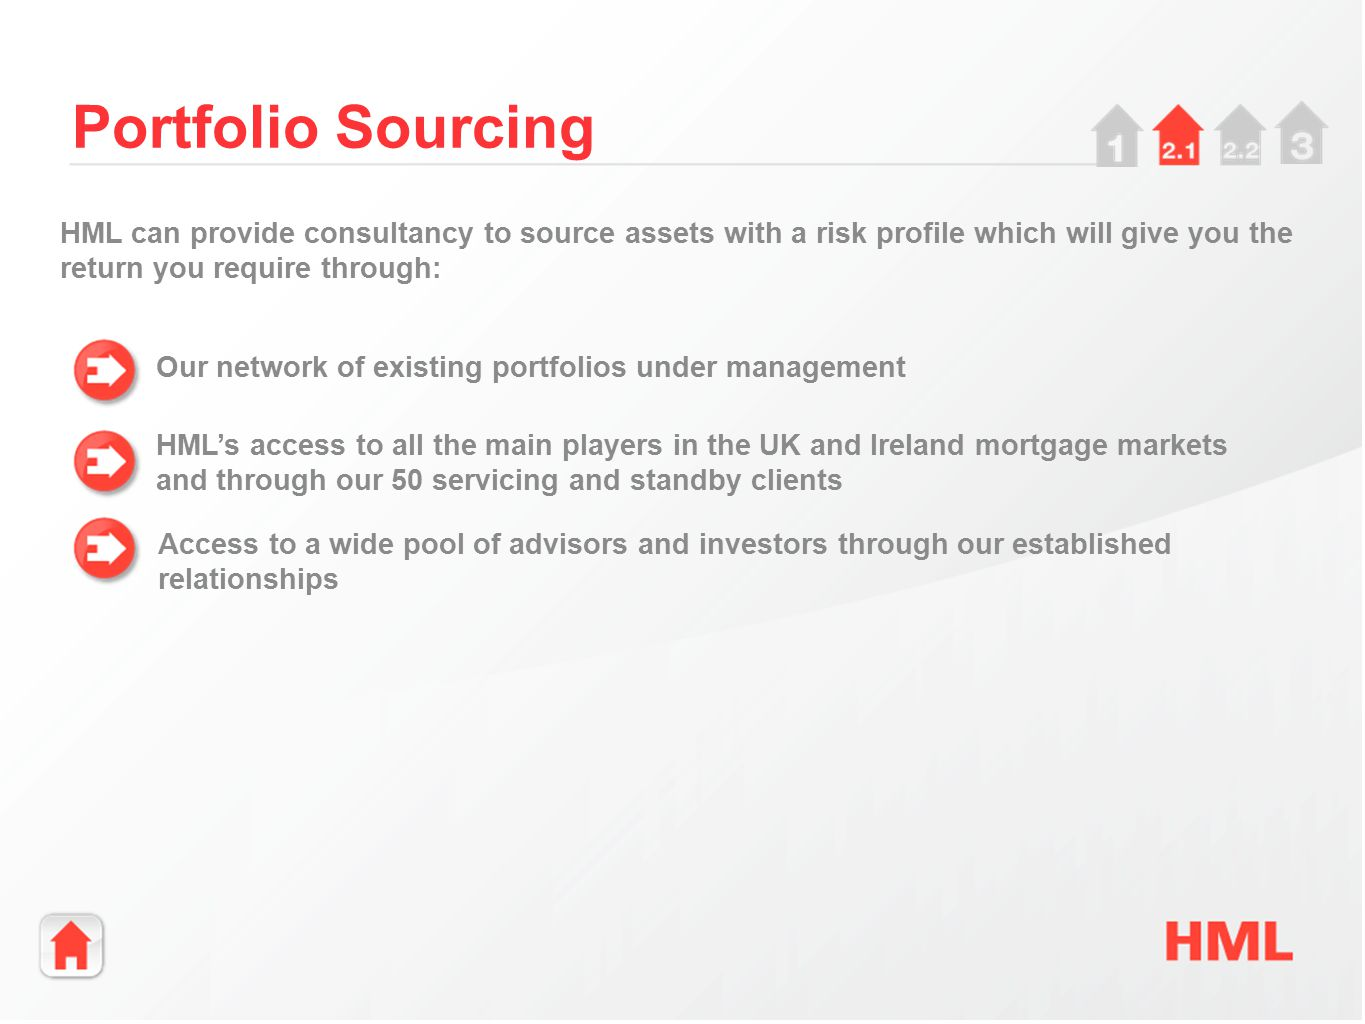 Our network of existing portfolios under management Portfolio Sourcing HML's access to all the main players in the UK and Ireland mortgage markets and through our 50 servicing and standby clients HML can provide consultancy to source assets with a risk profile which will give you the return you require through: Access to a wide pool of advisors and investors through our established relationships